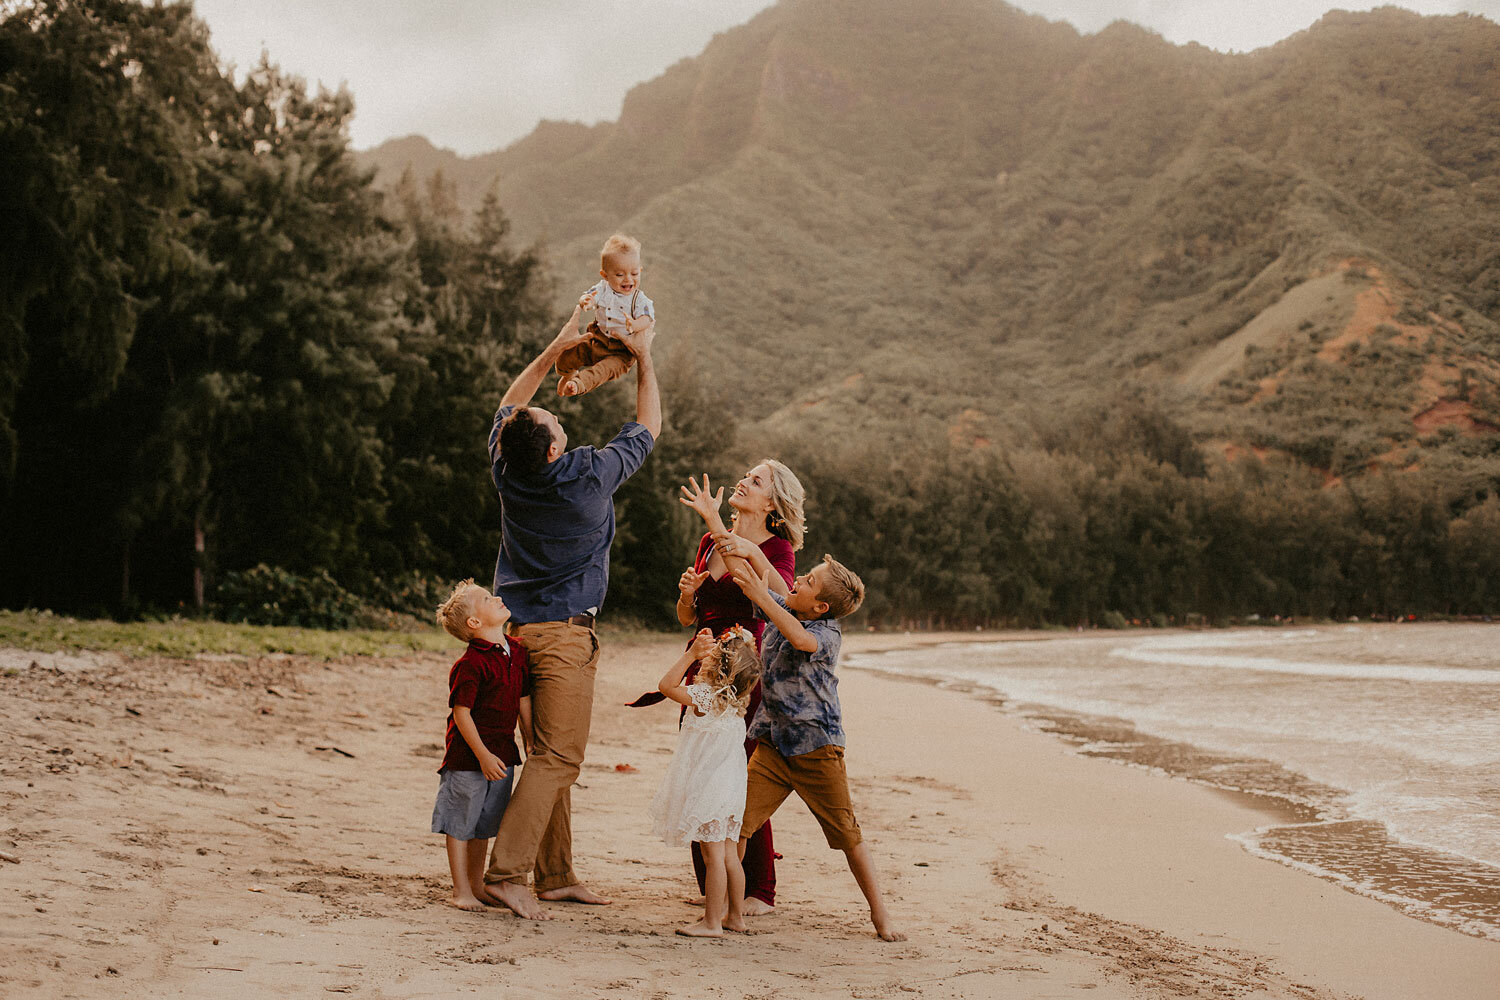 Oahu-Hawaii-Family-Photography-The-Sophia-Co-11.jpg